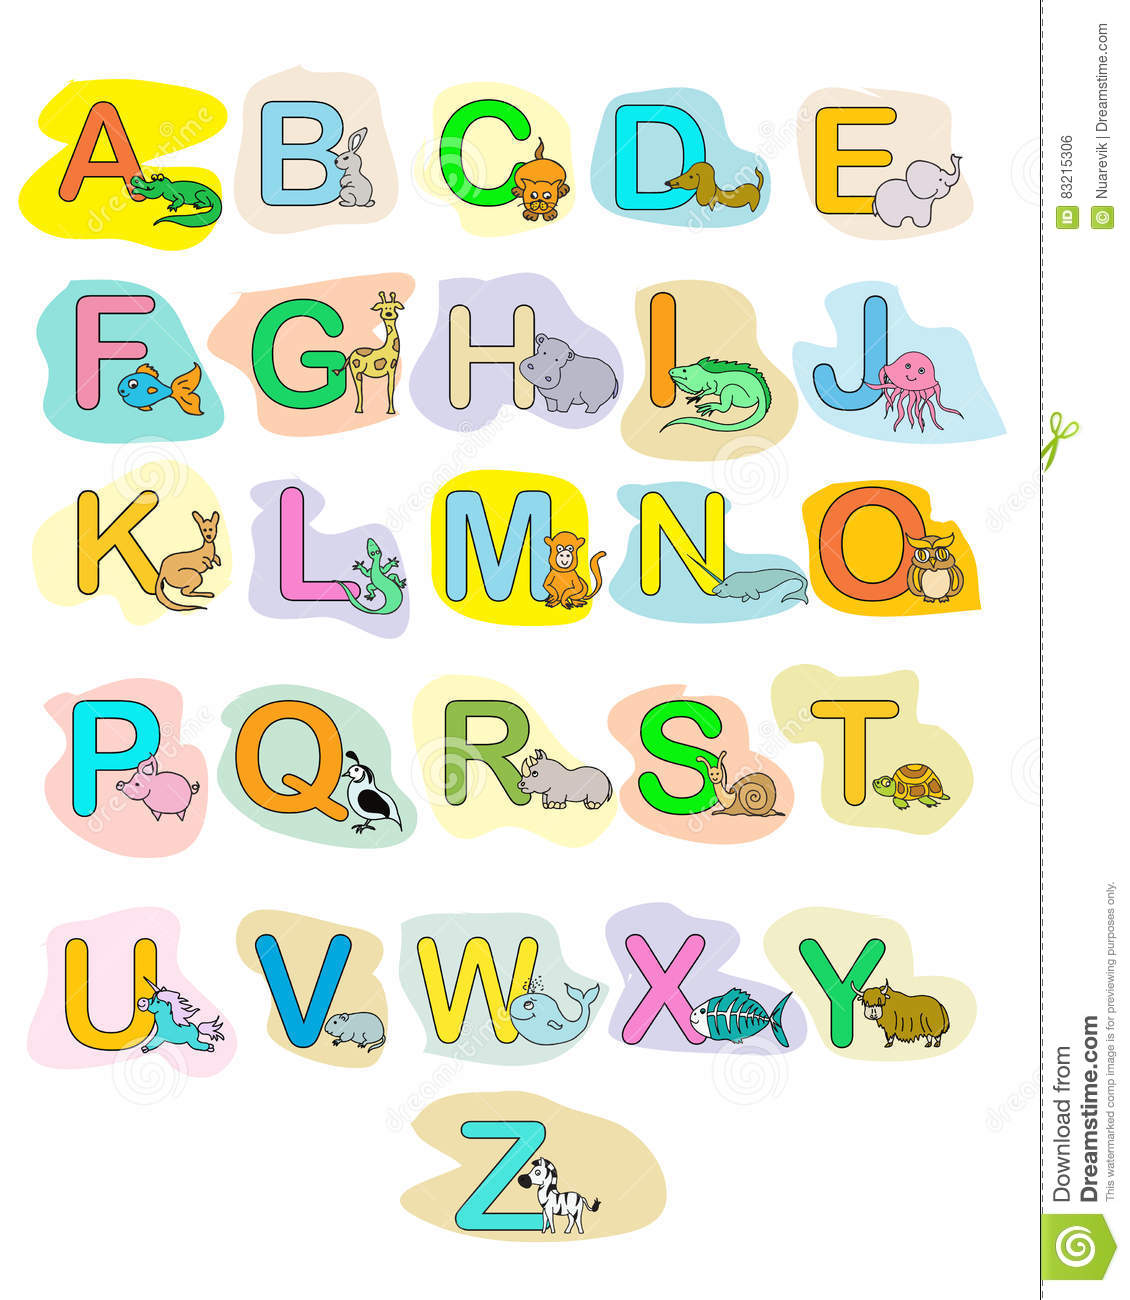 Alphabet Baby Animals Abc Children Color Poster Stock Illustration